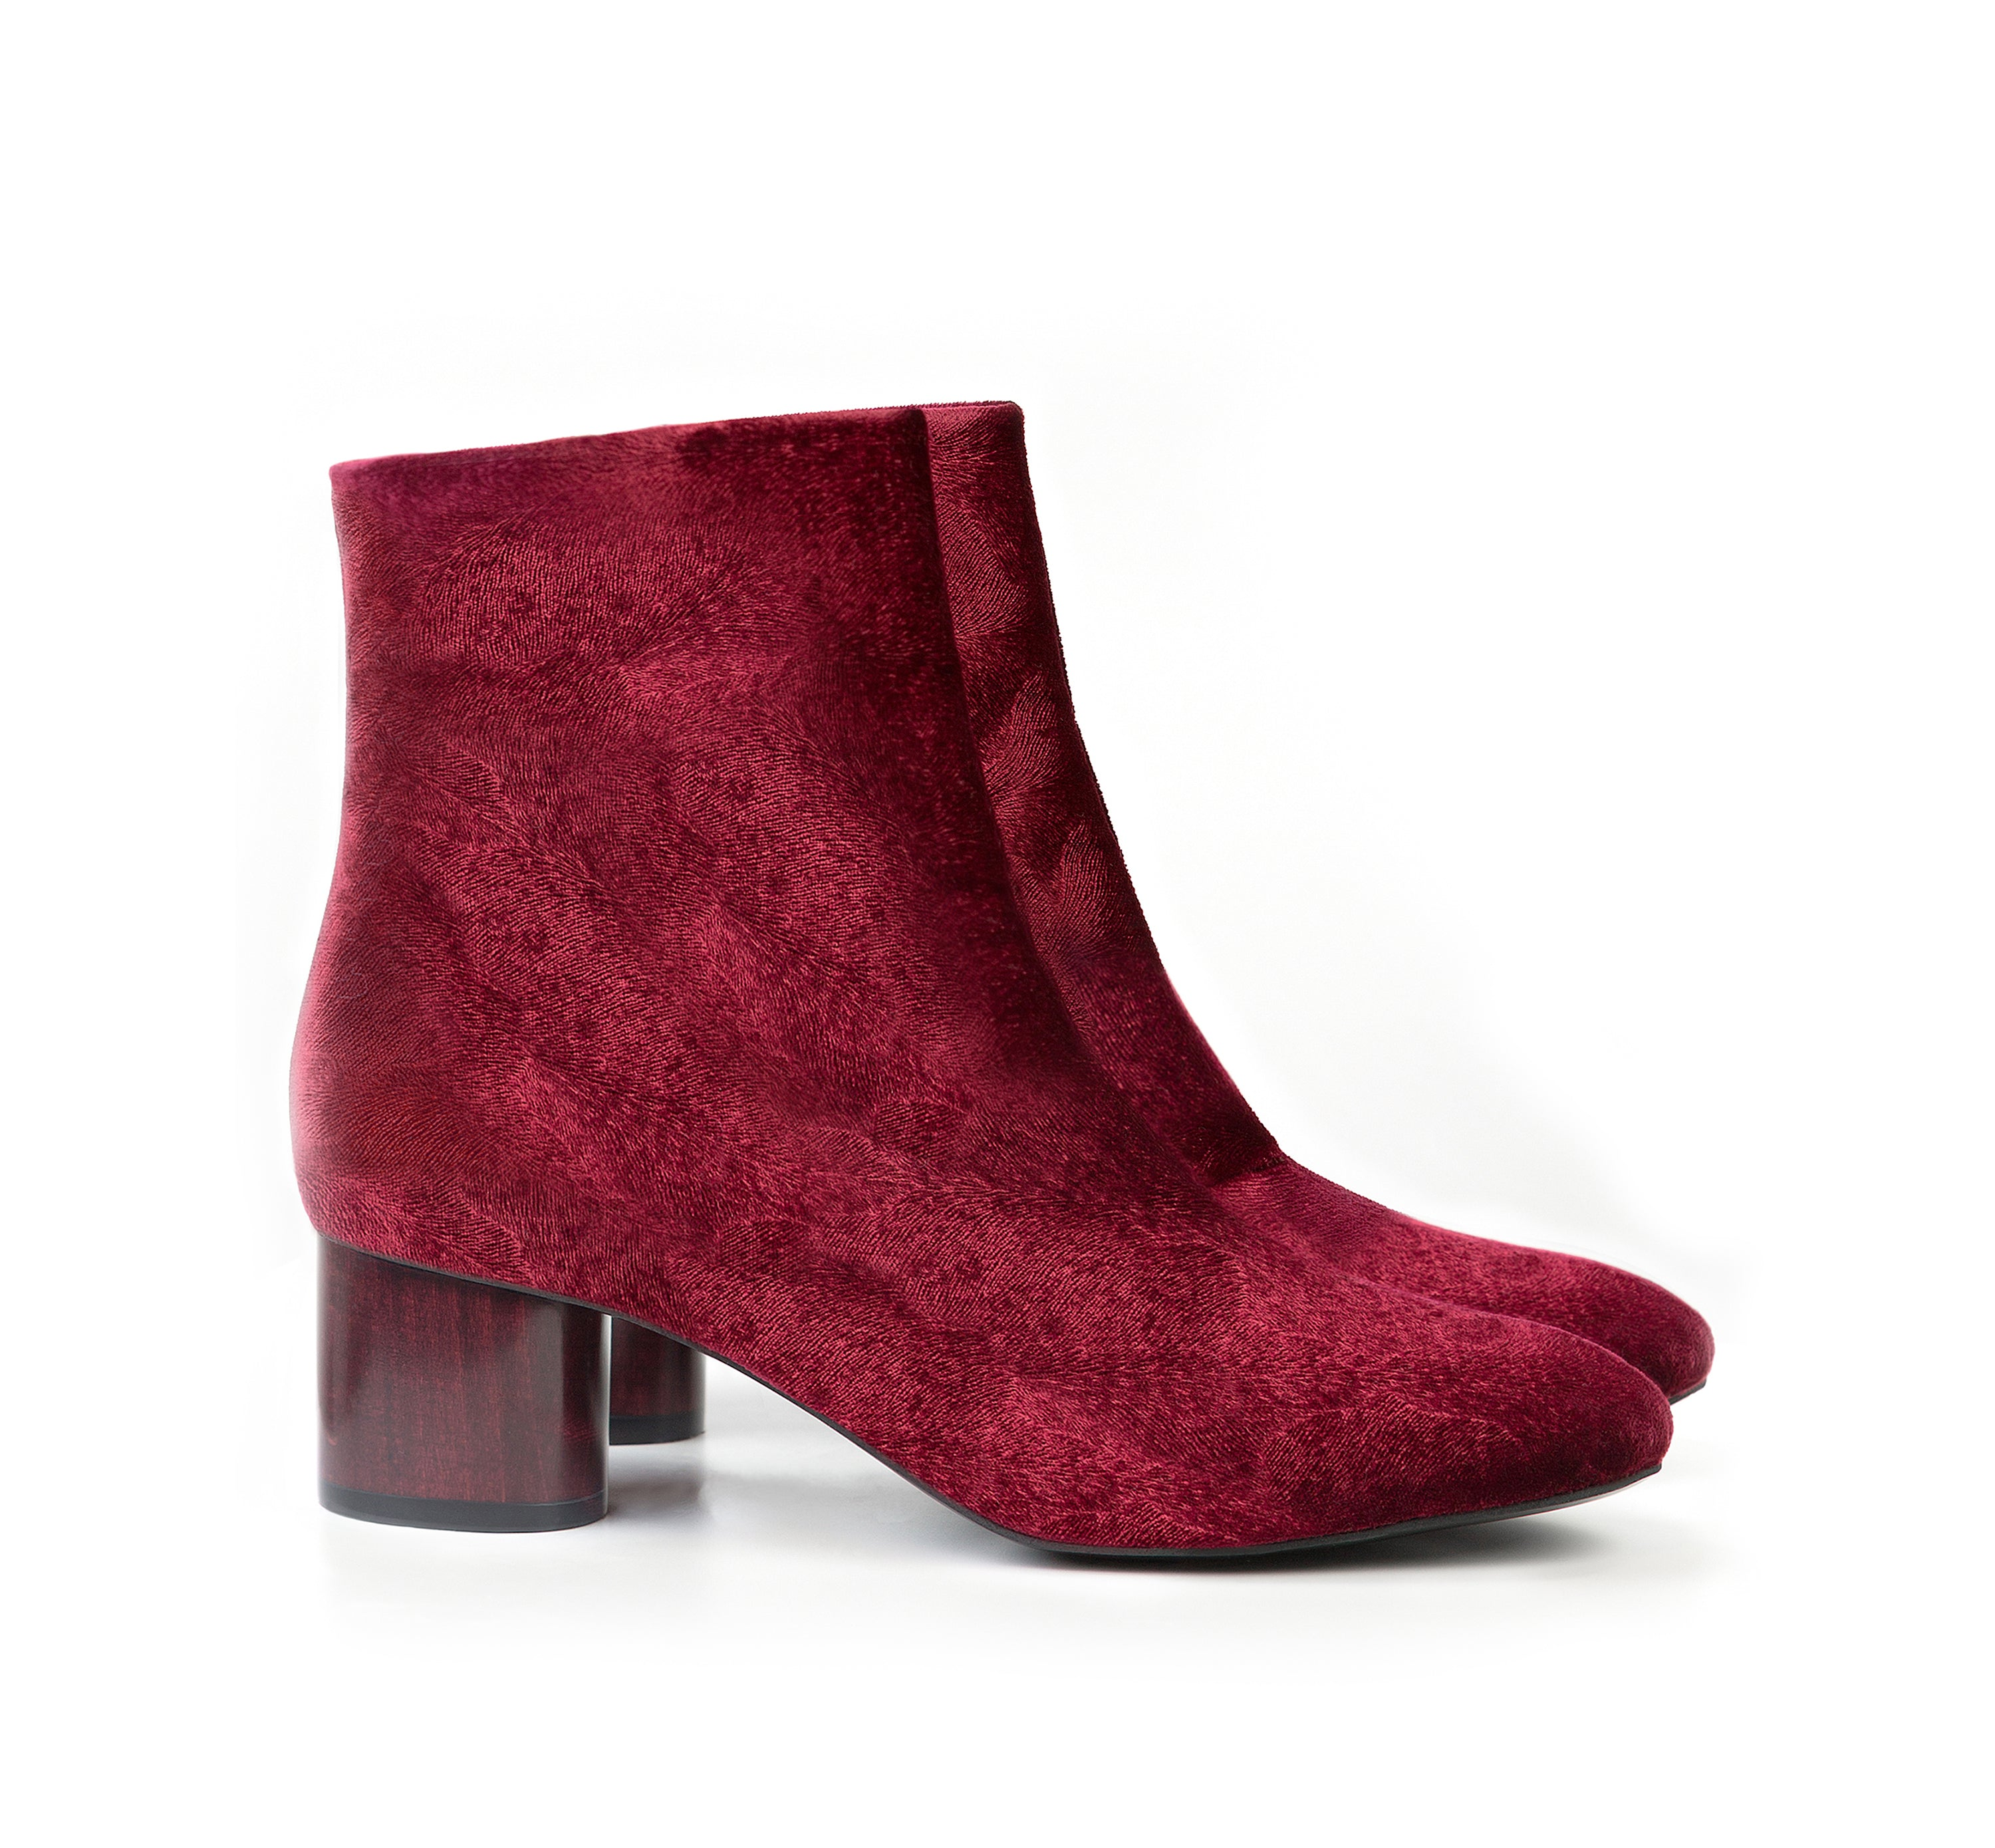 Low Ankle Boot in Wine Velvet. Vegan Luxe Ethical Footwear by Sydney Brown. Black Sustainable Wood Heels. Sustainable & Ethical. Cruelty-Free. Autumn Winter style.